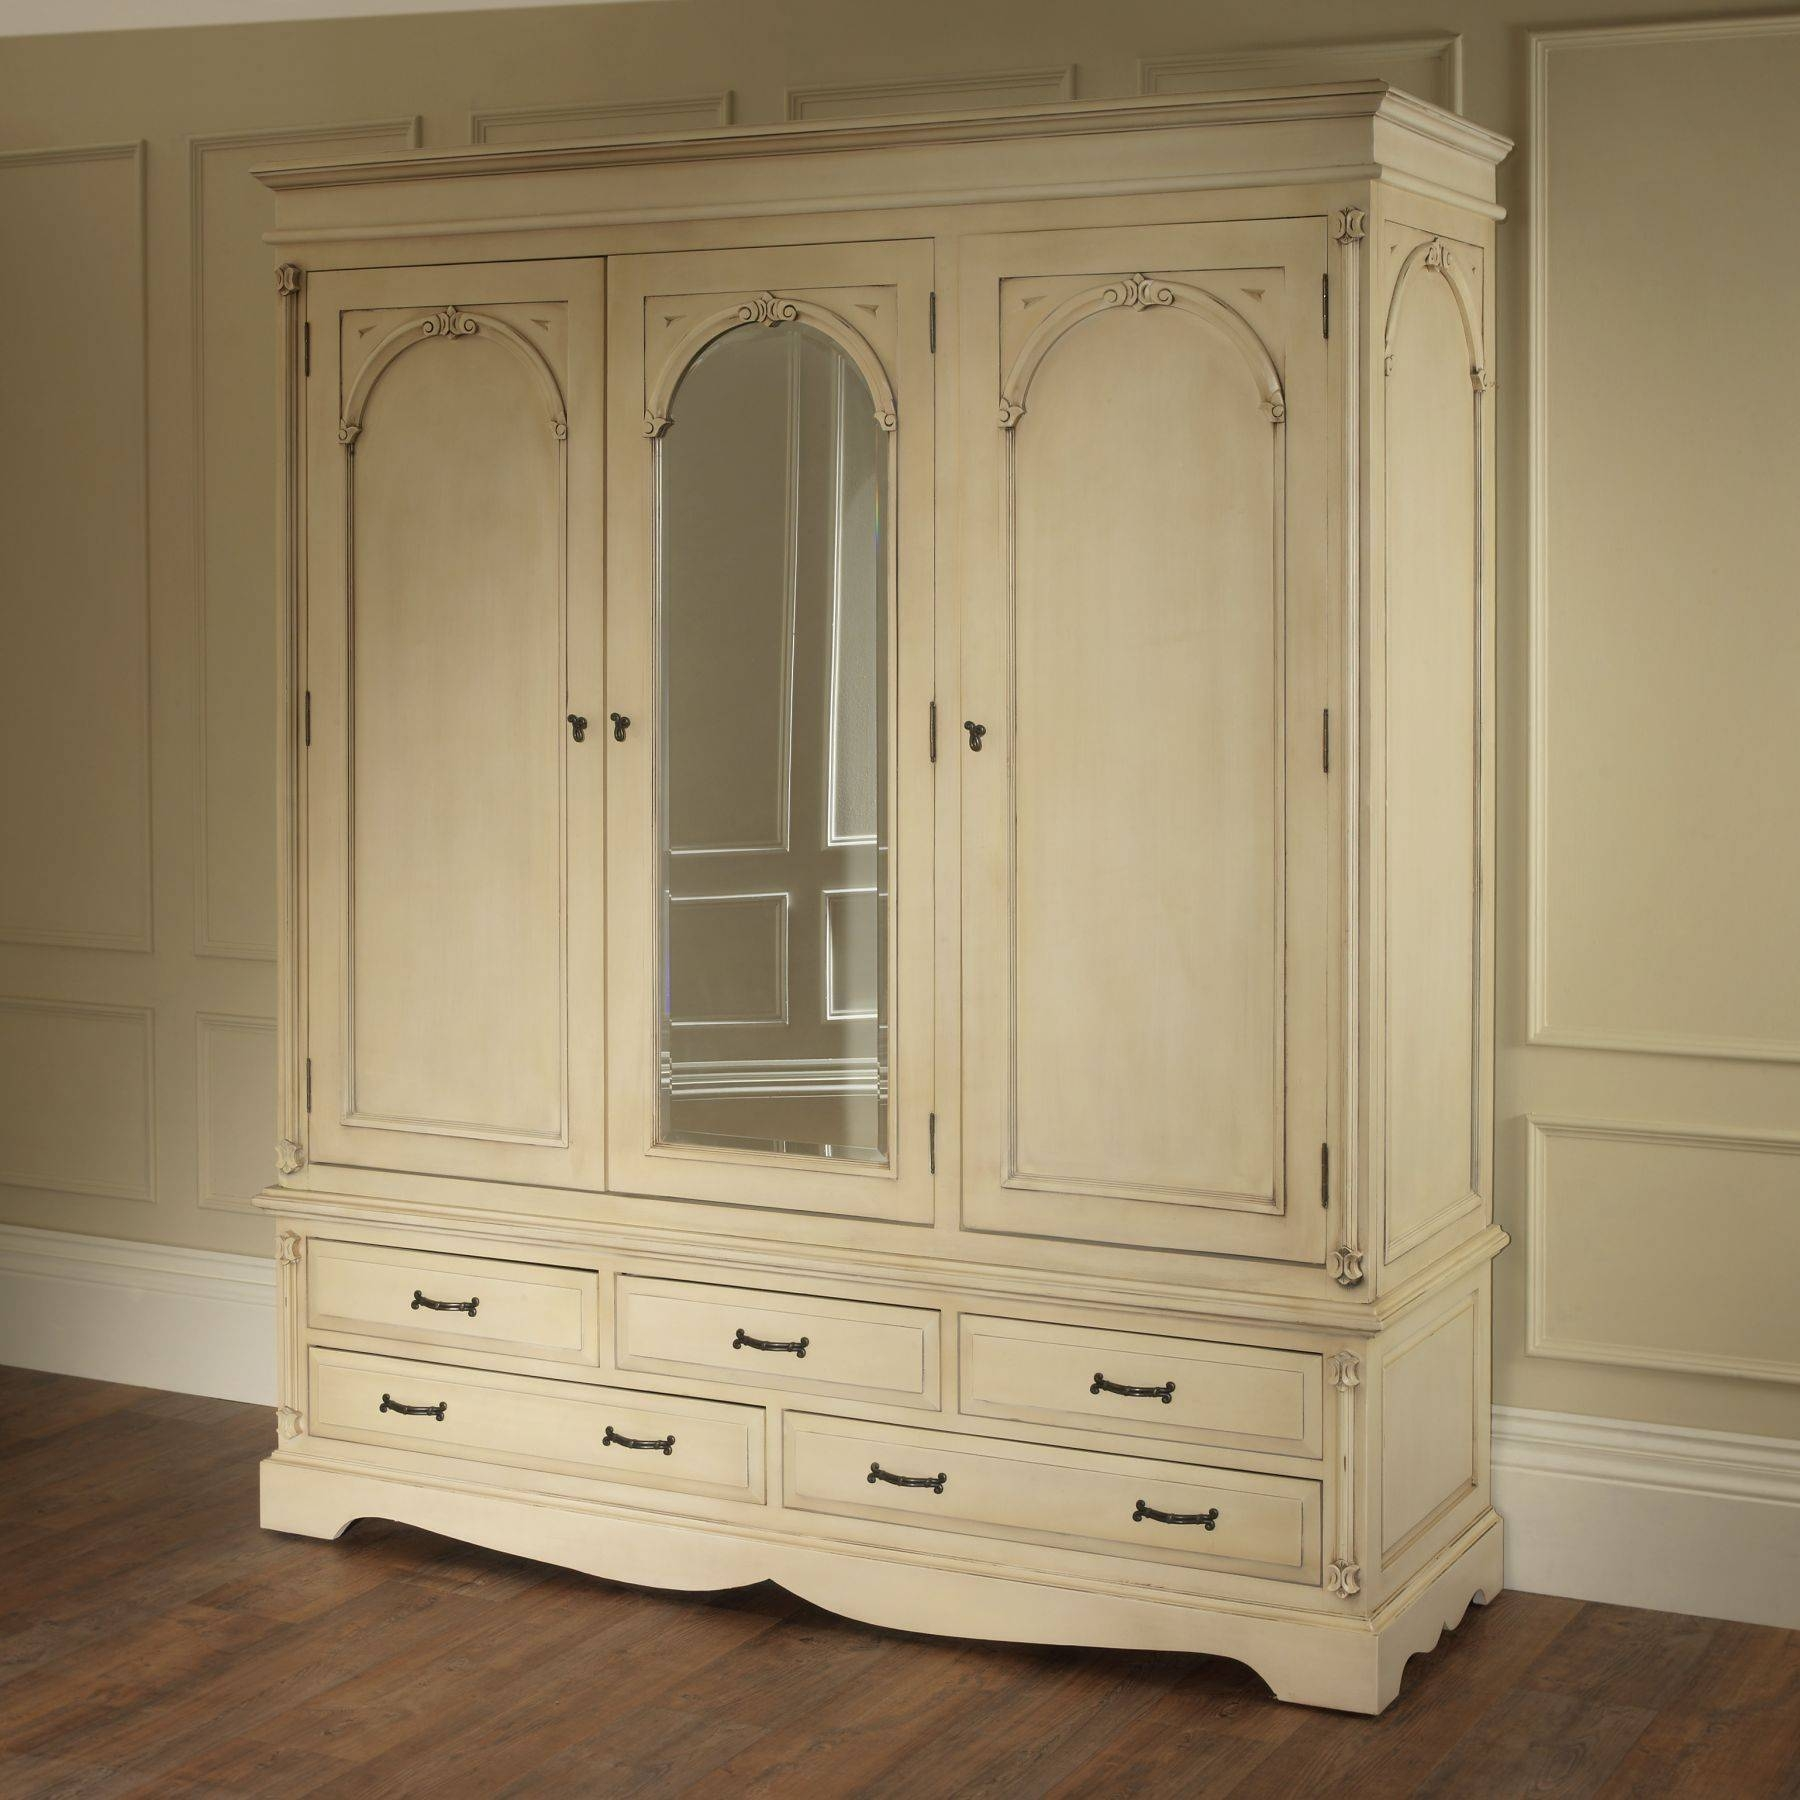 Bedroom: Interesting Brusali Wardrobe Cabinets For Your Bedroom intended for Cream French Wardrobes (Image 3 of 15)